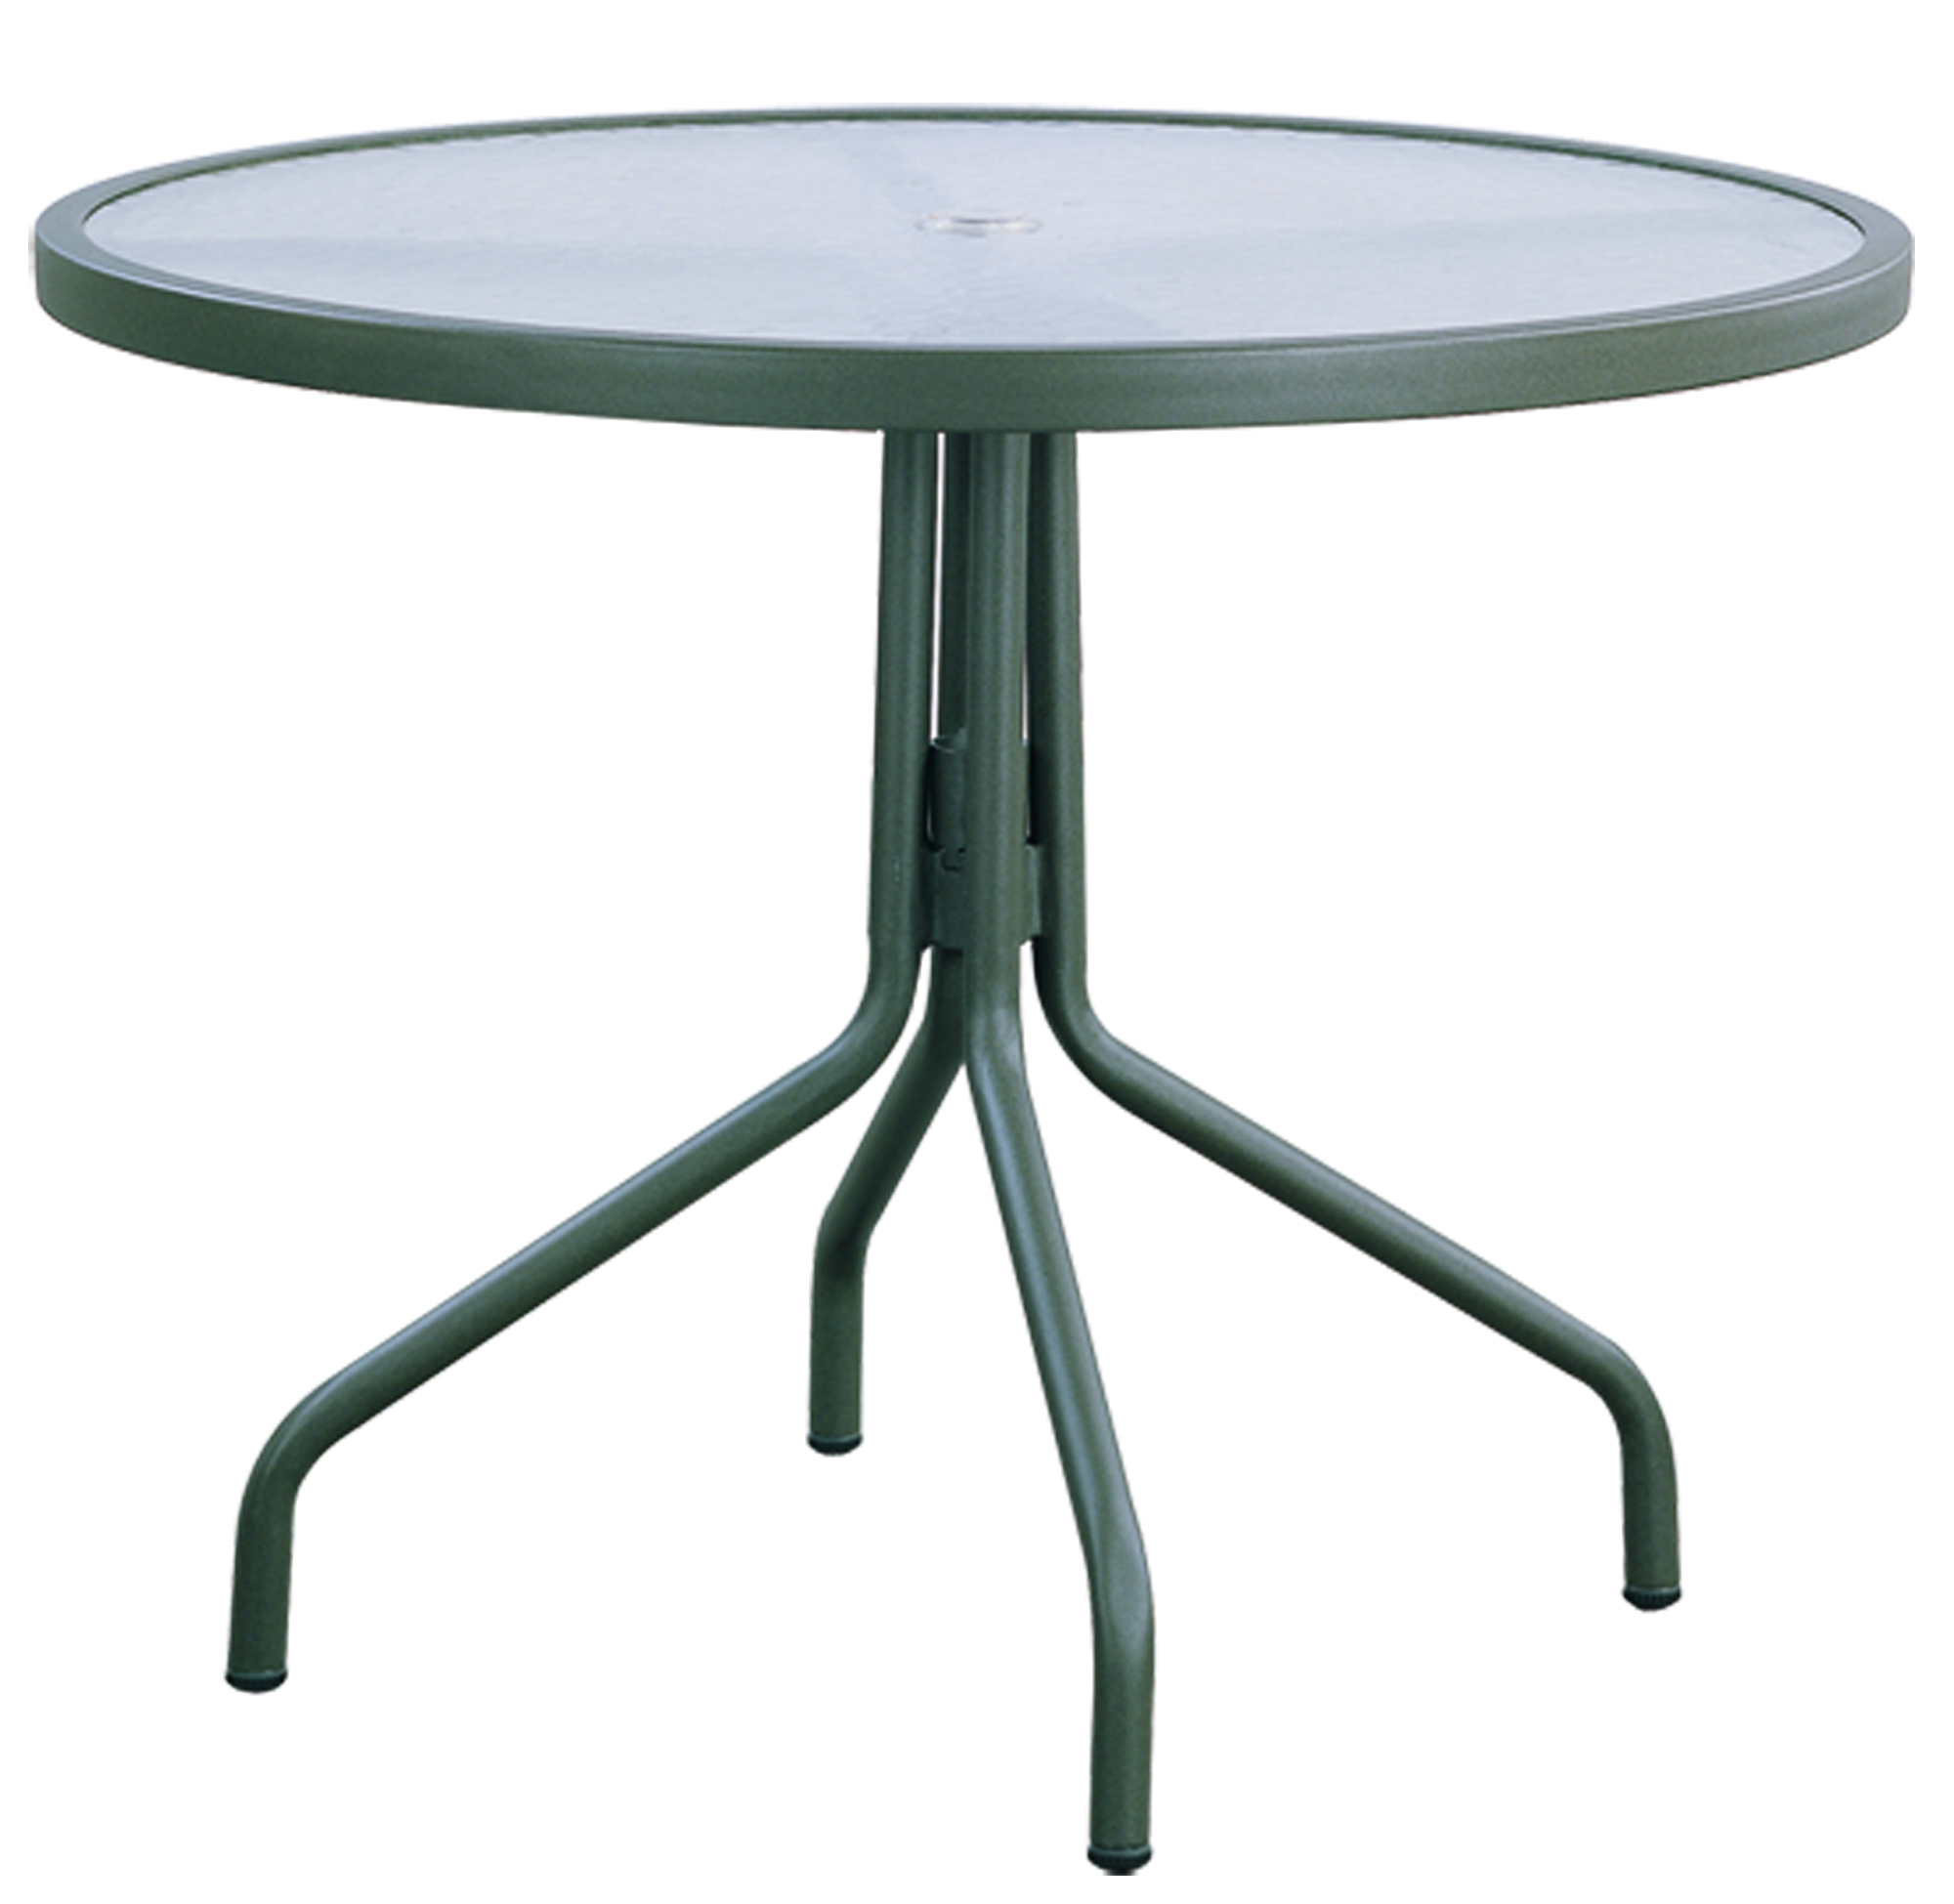 """BR-36R 36"""" Round Table   24.8"""" x 24.8"""" x 11.1"""""""